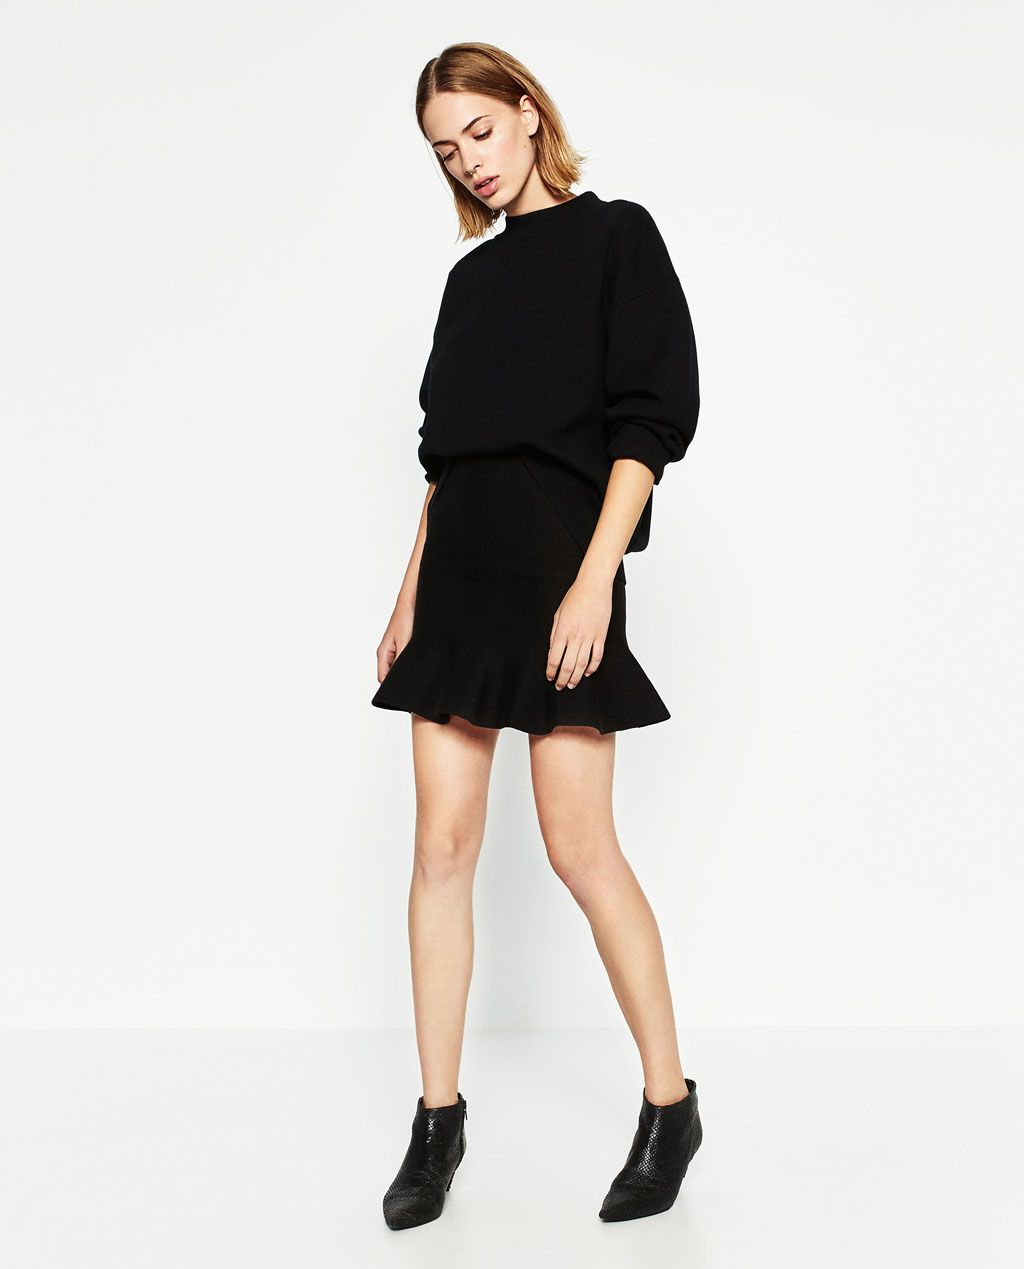 KNIT SKIRT-NEW IN-WOMAN | ZARA United States | wish-casual ...